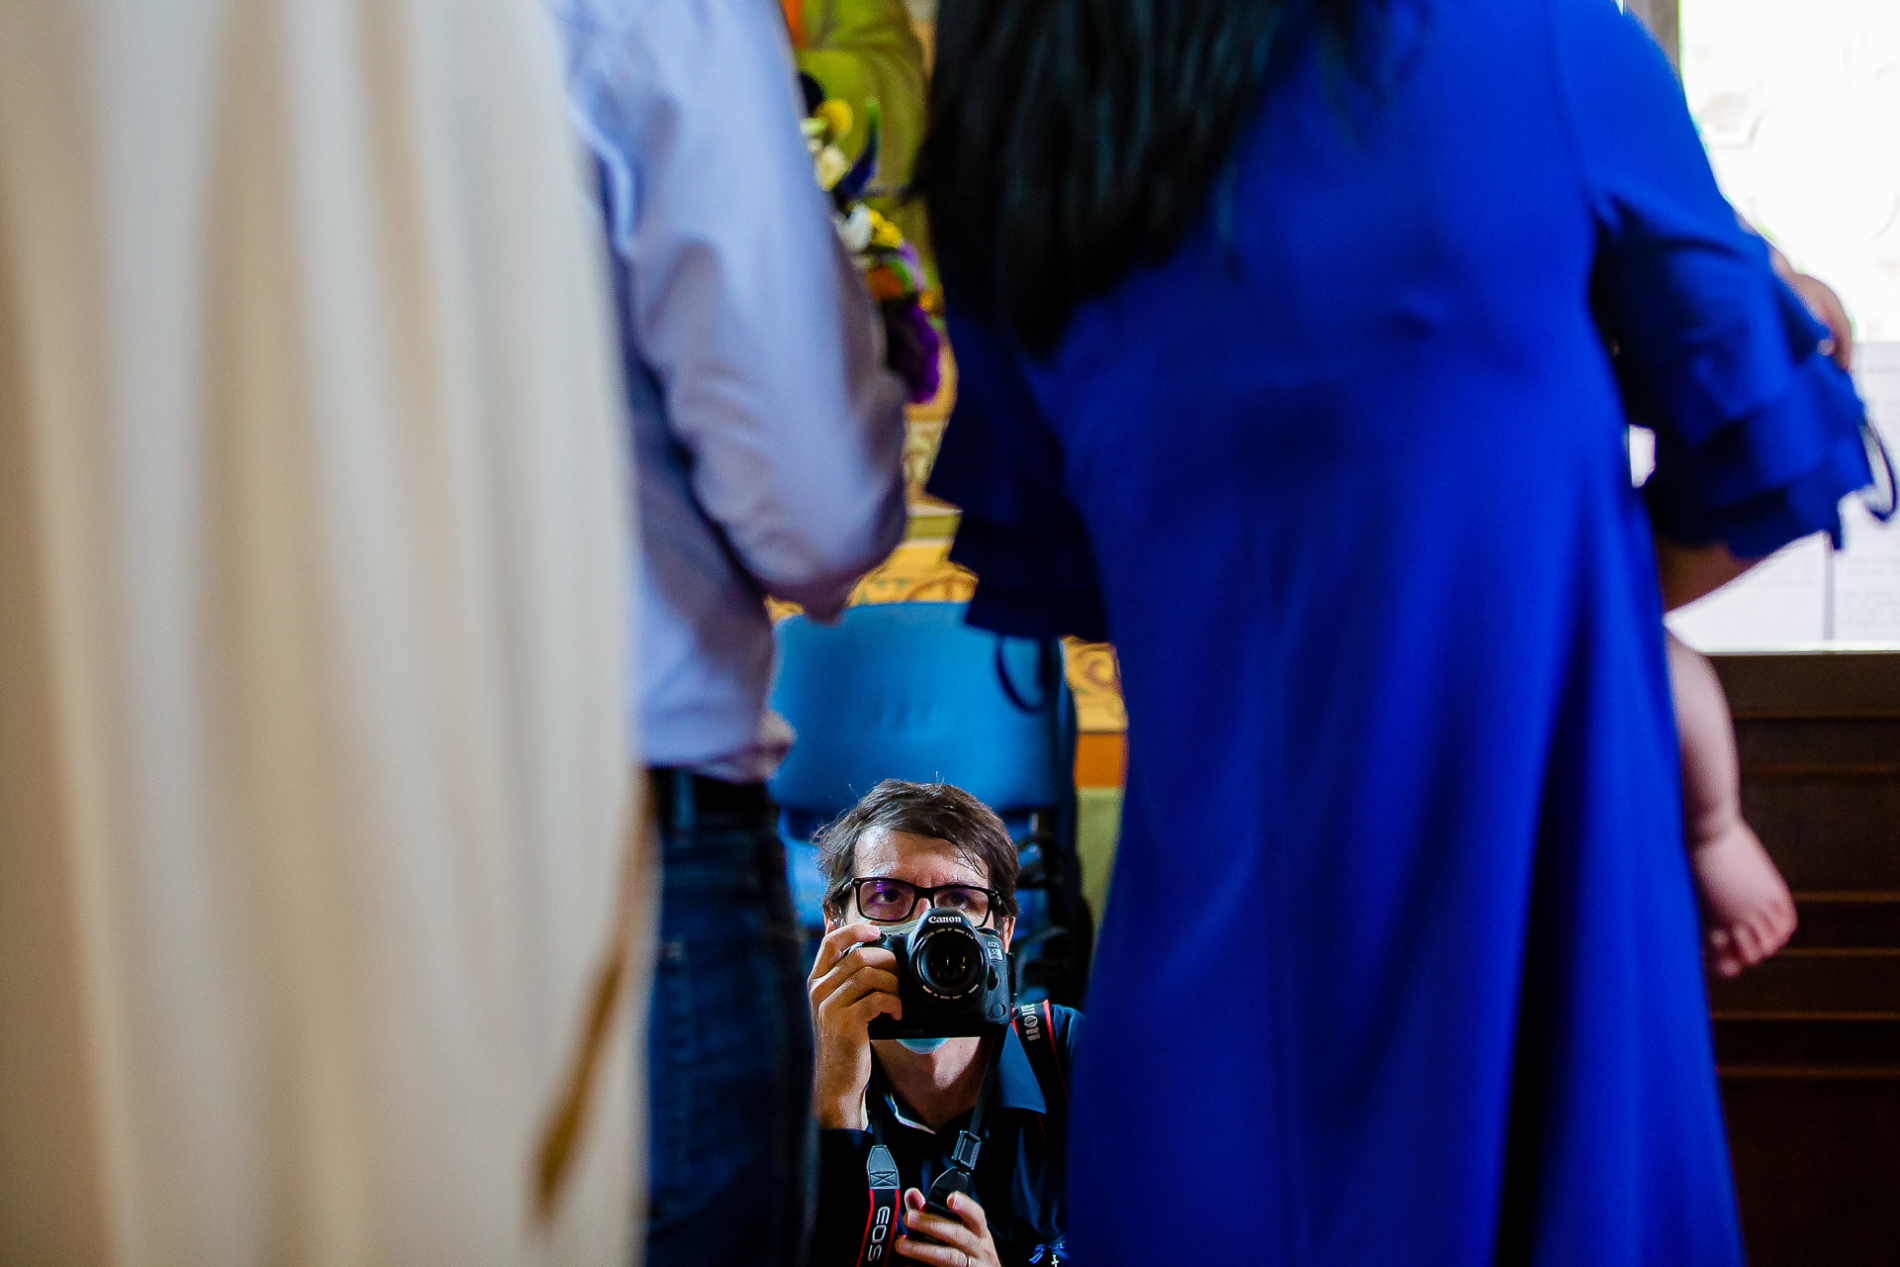 Bucharest COVID wedding photographer working at a Romania ceremony